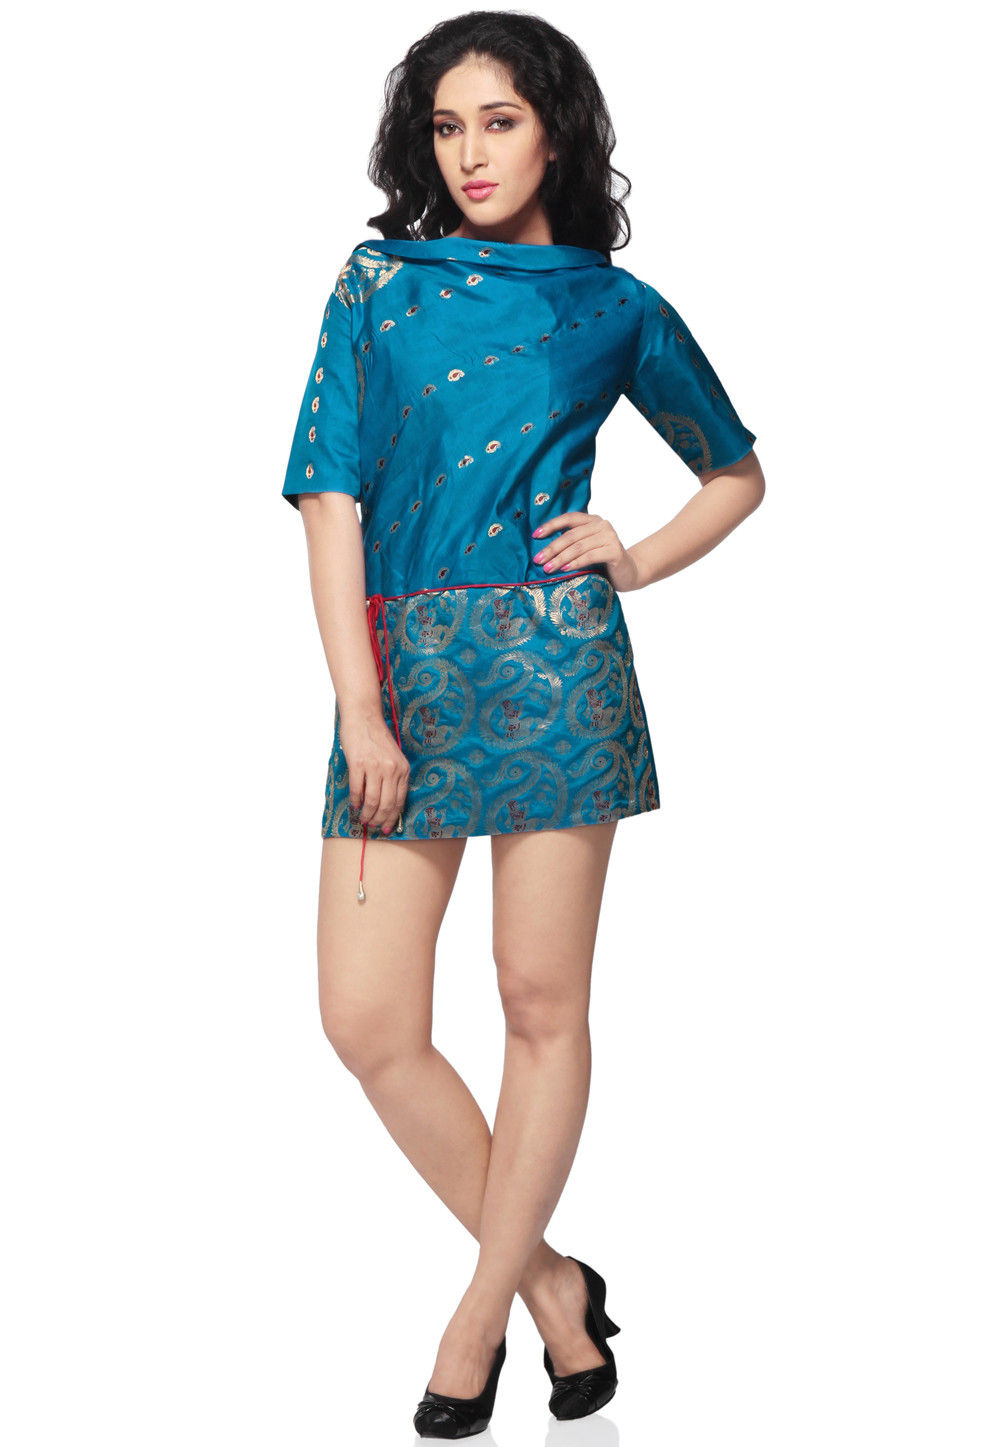 Pure Silk Short Dress in Teal Blue